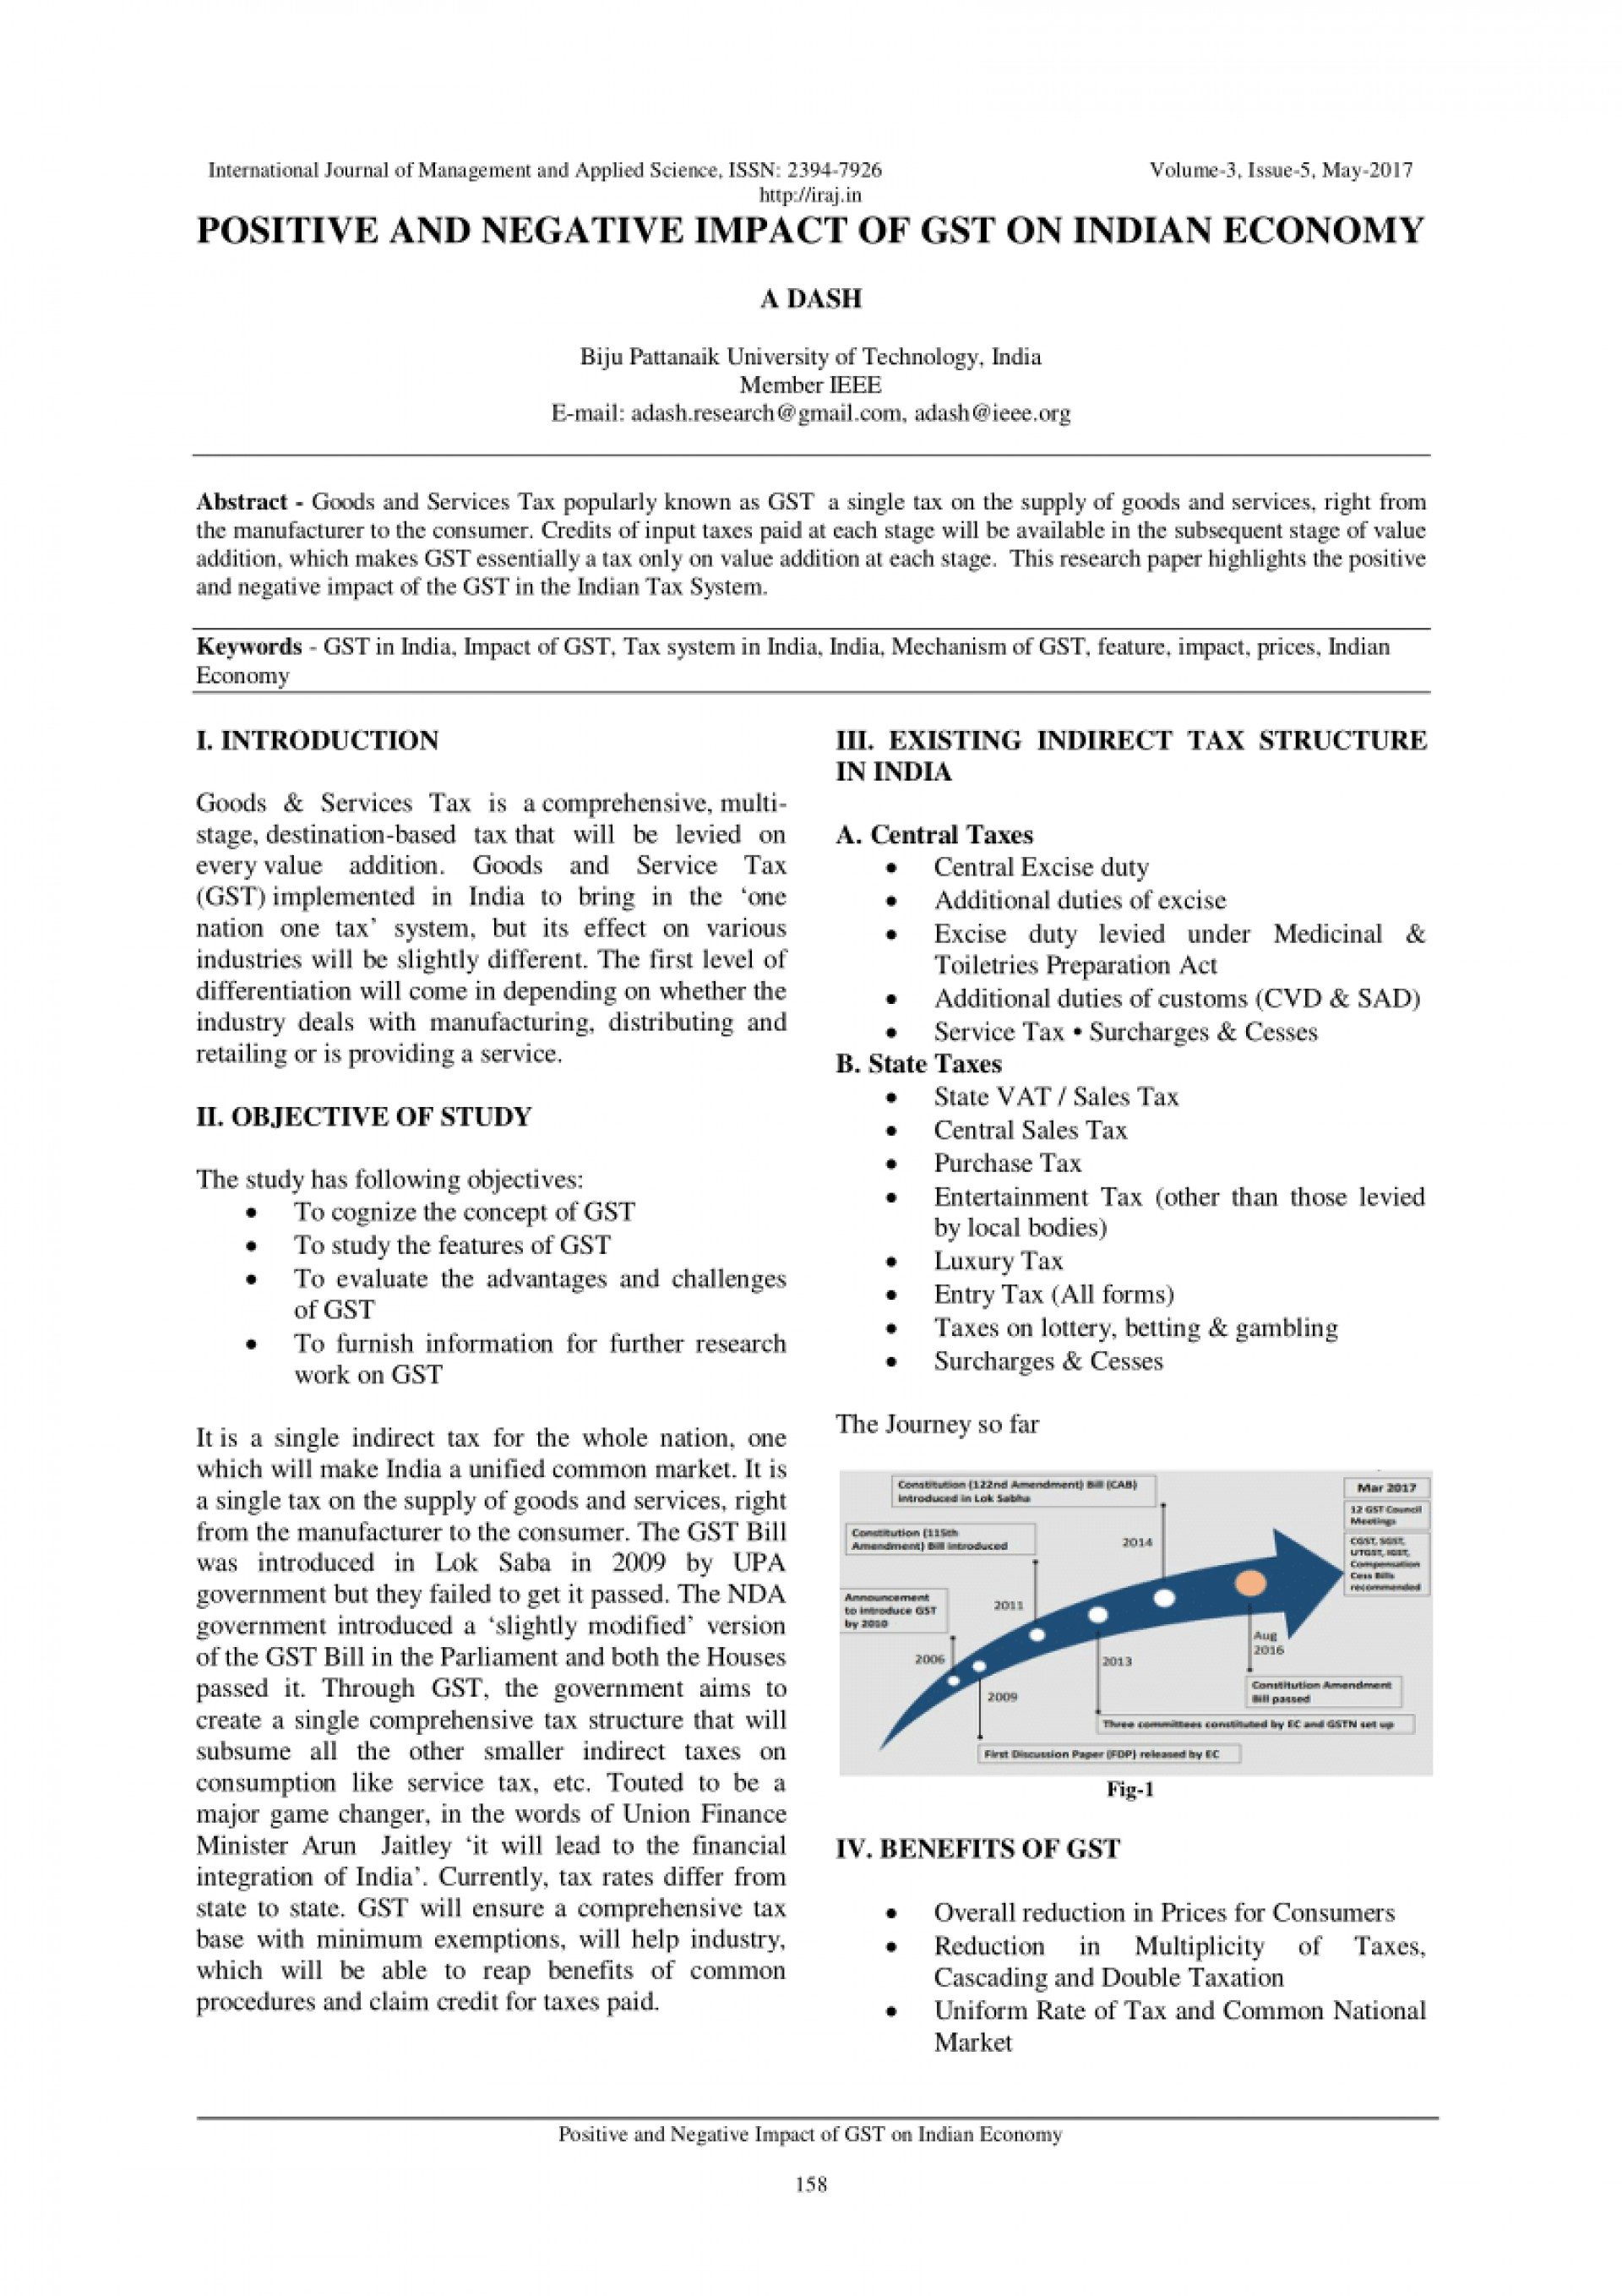 003 Research Paper Largepreview Remarkable Economy Political Topics Cash To Cashless Gig 1920